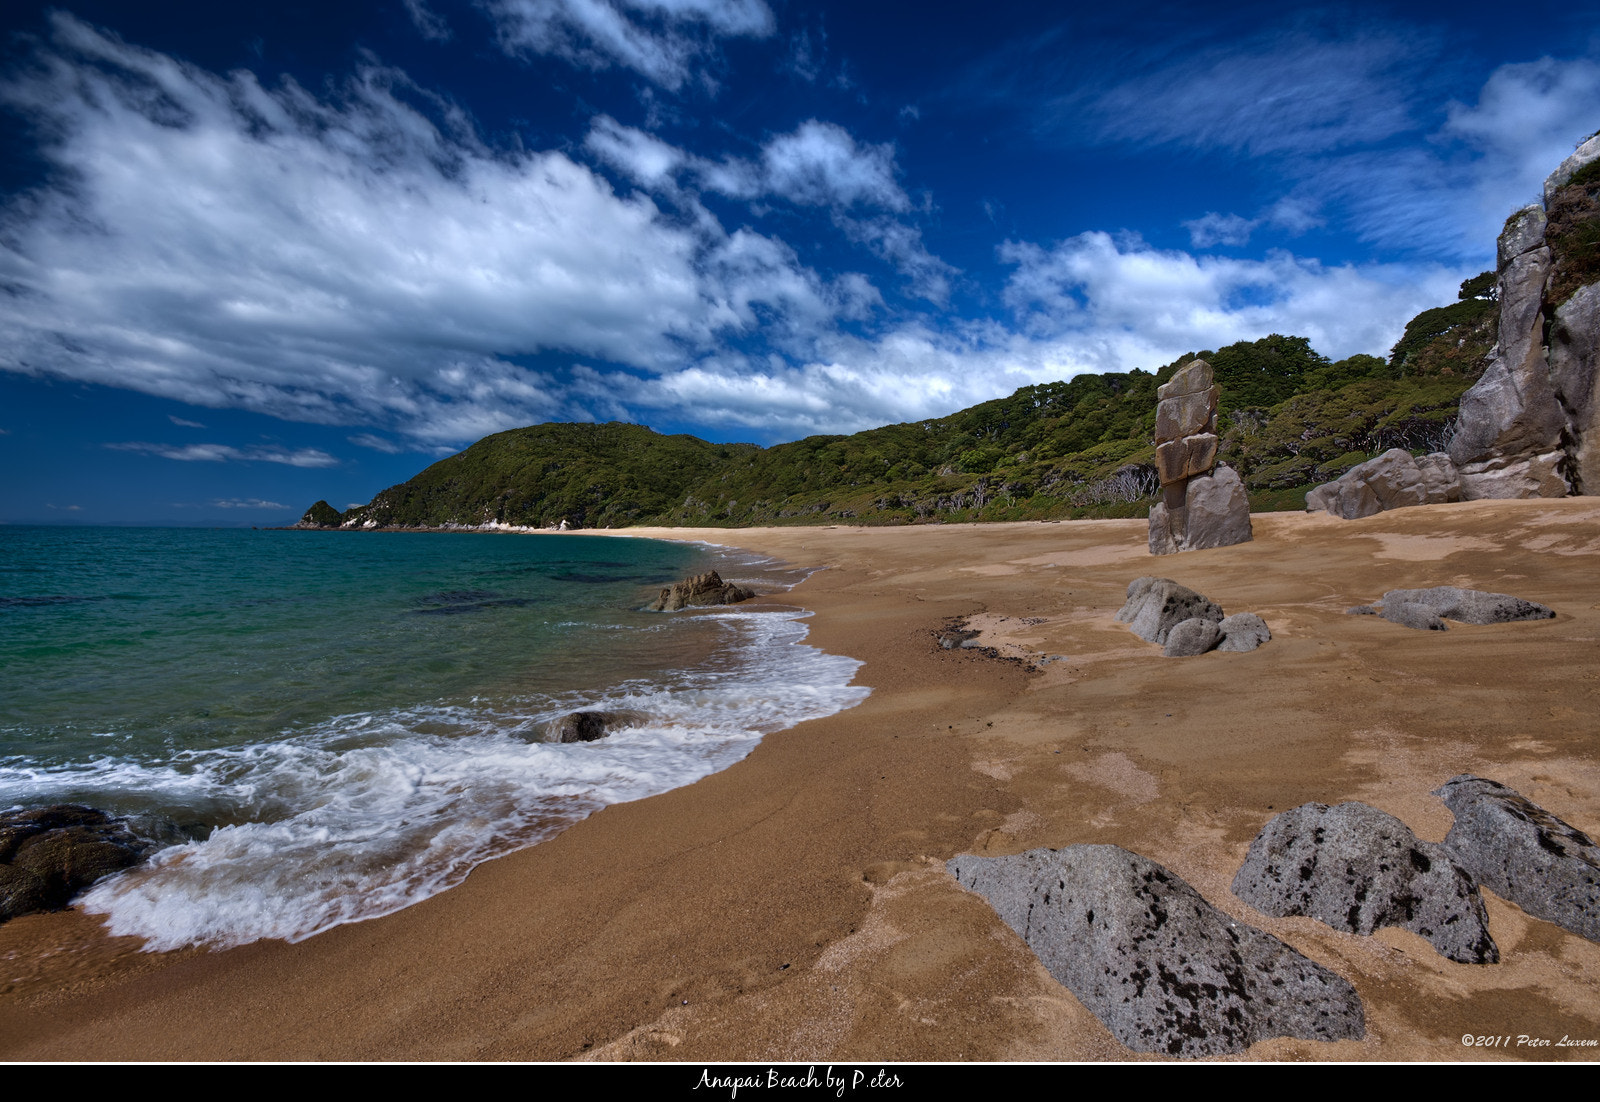 Photograph Anapai Beach by Peter Luxem on 500px